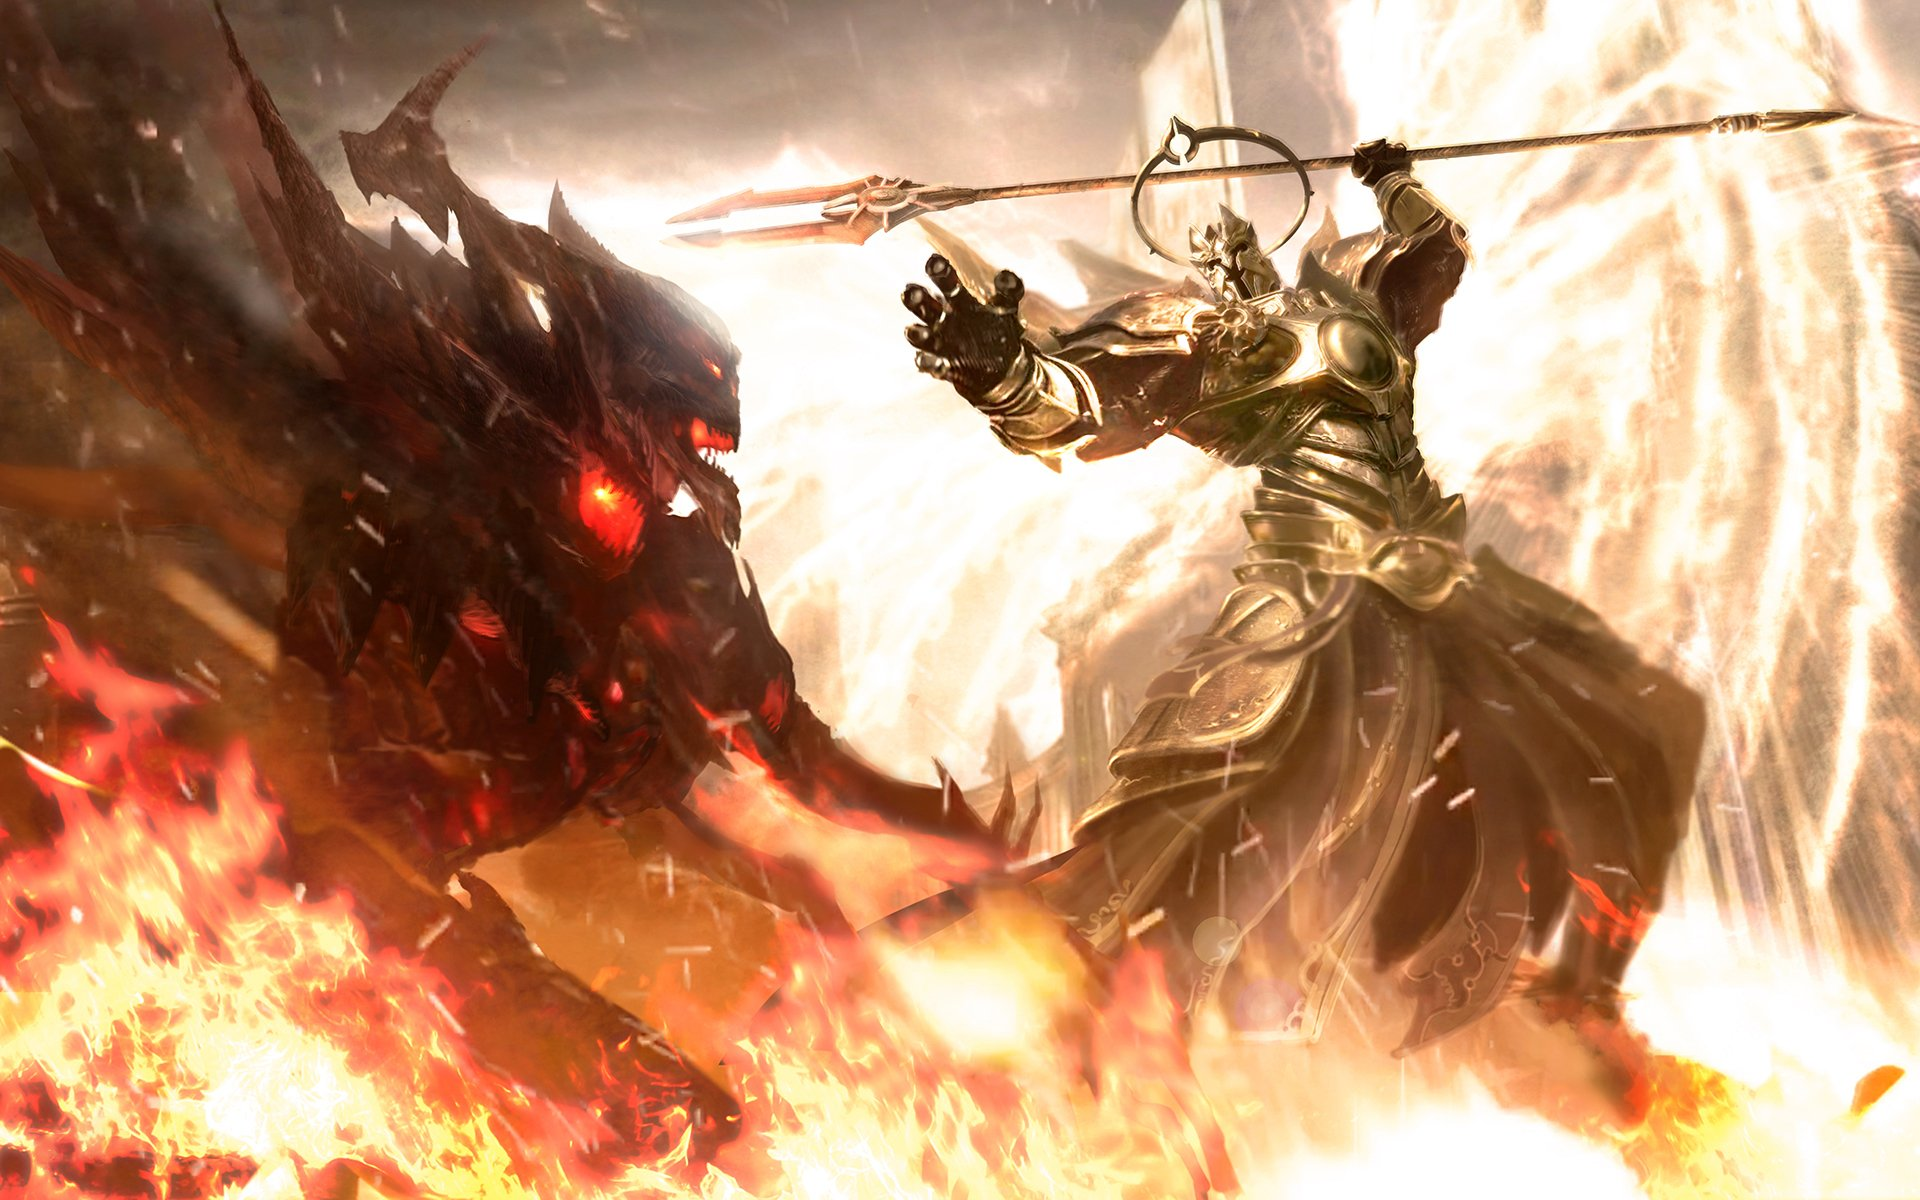 diablo wallpaper 2560x1440 - photo #16